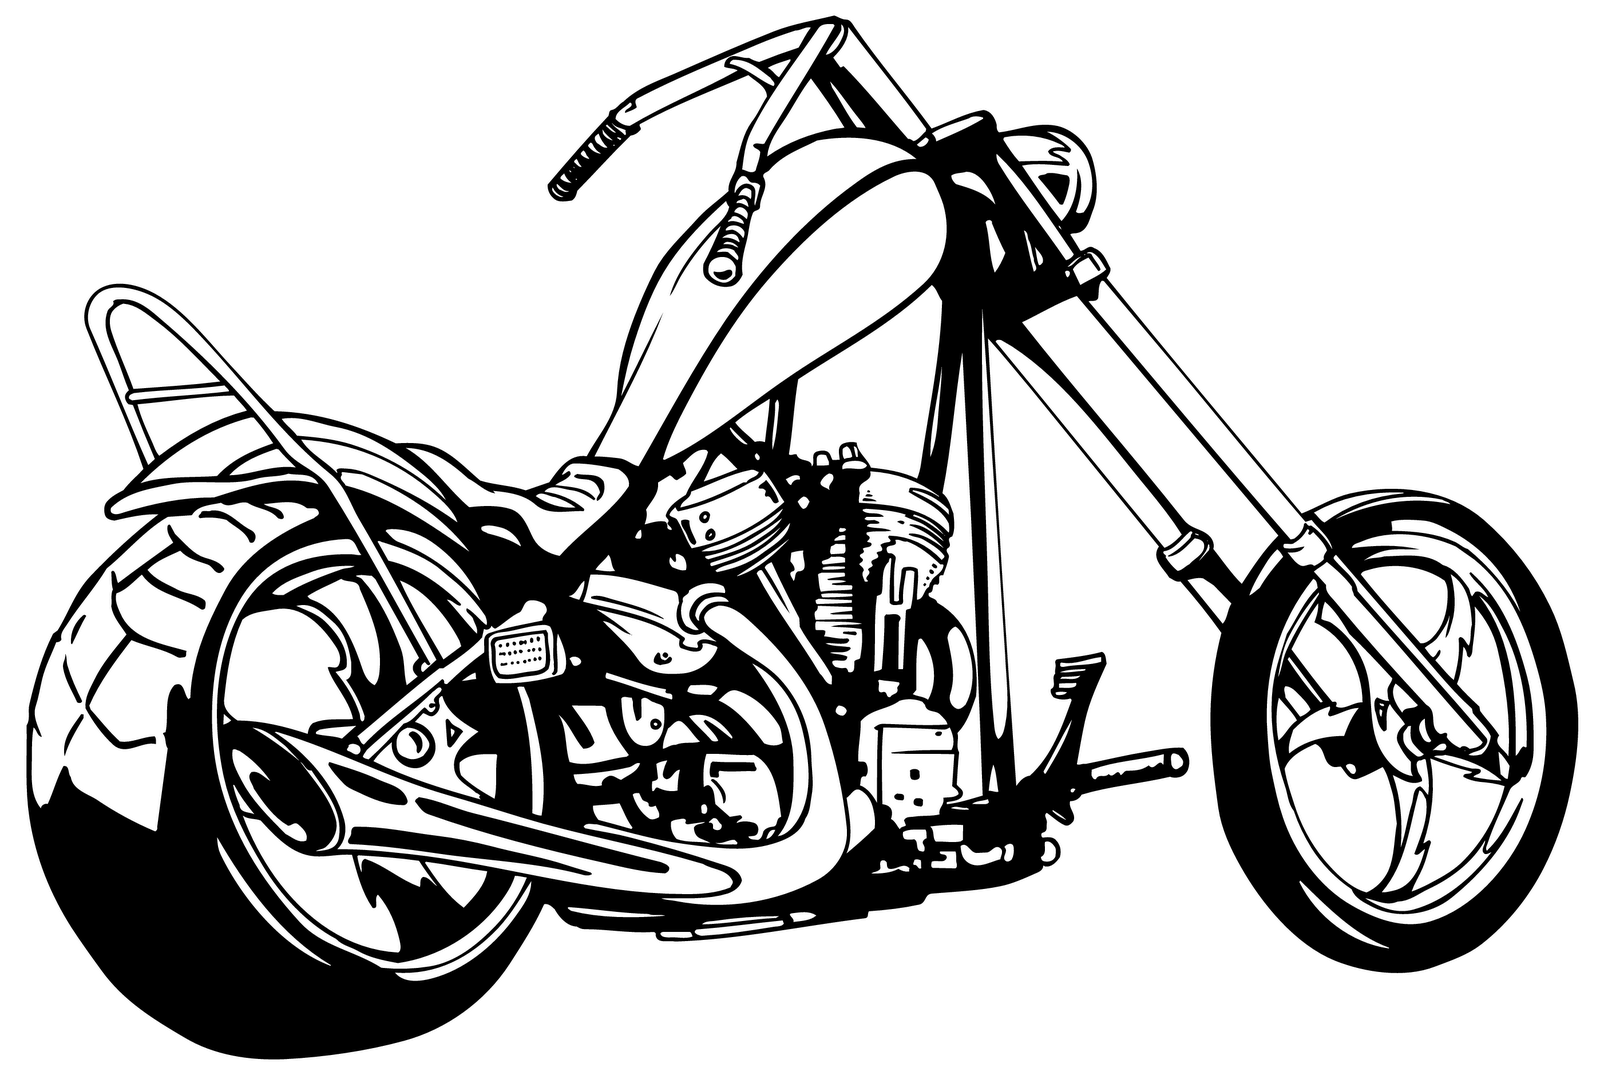 Free motorbike cliparts download. Motorcycle clipart motorcycle drawing